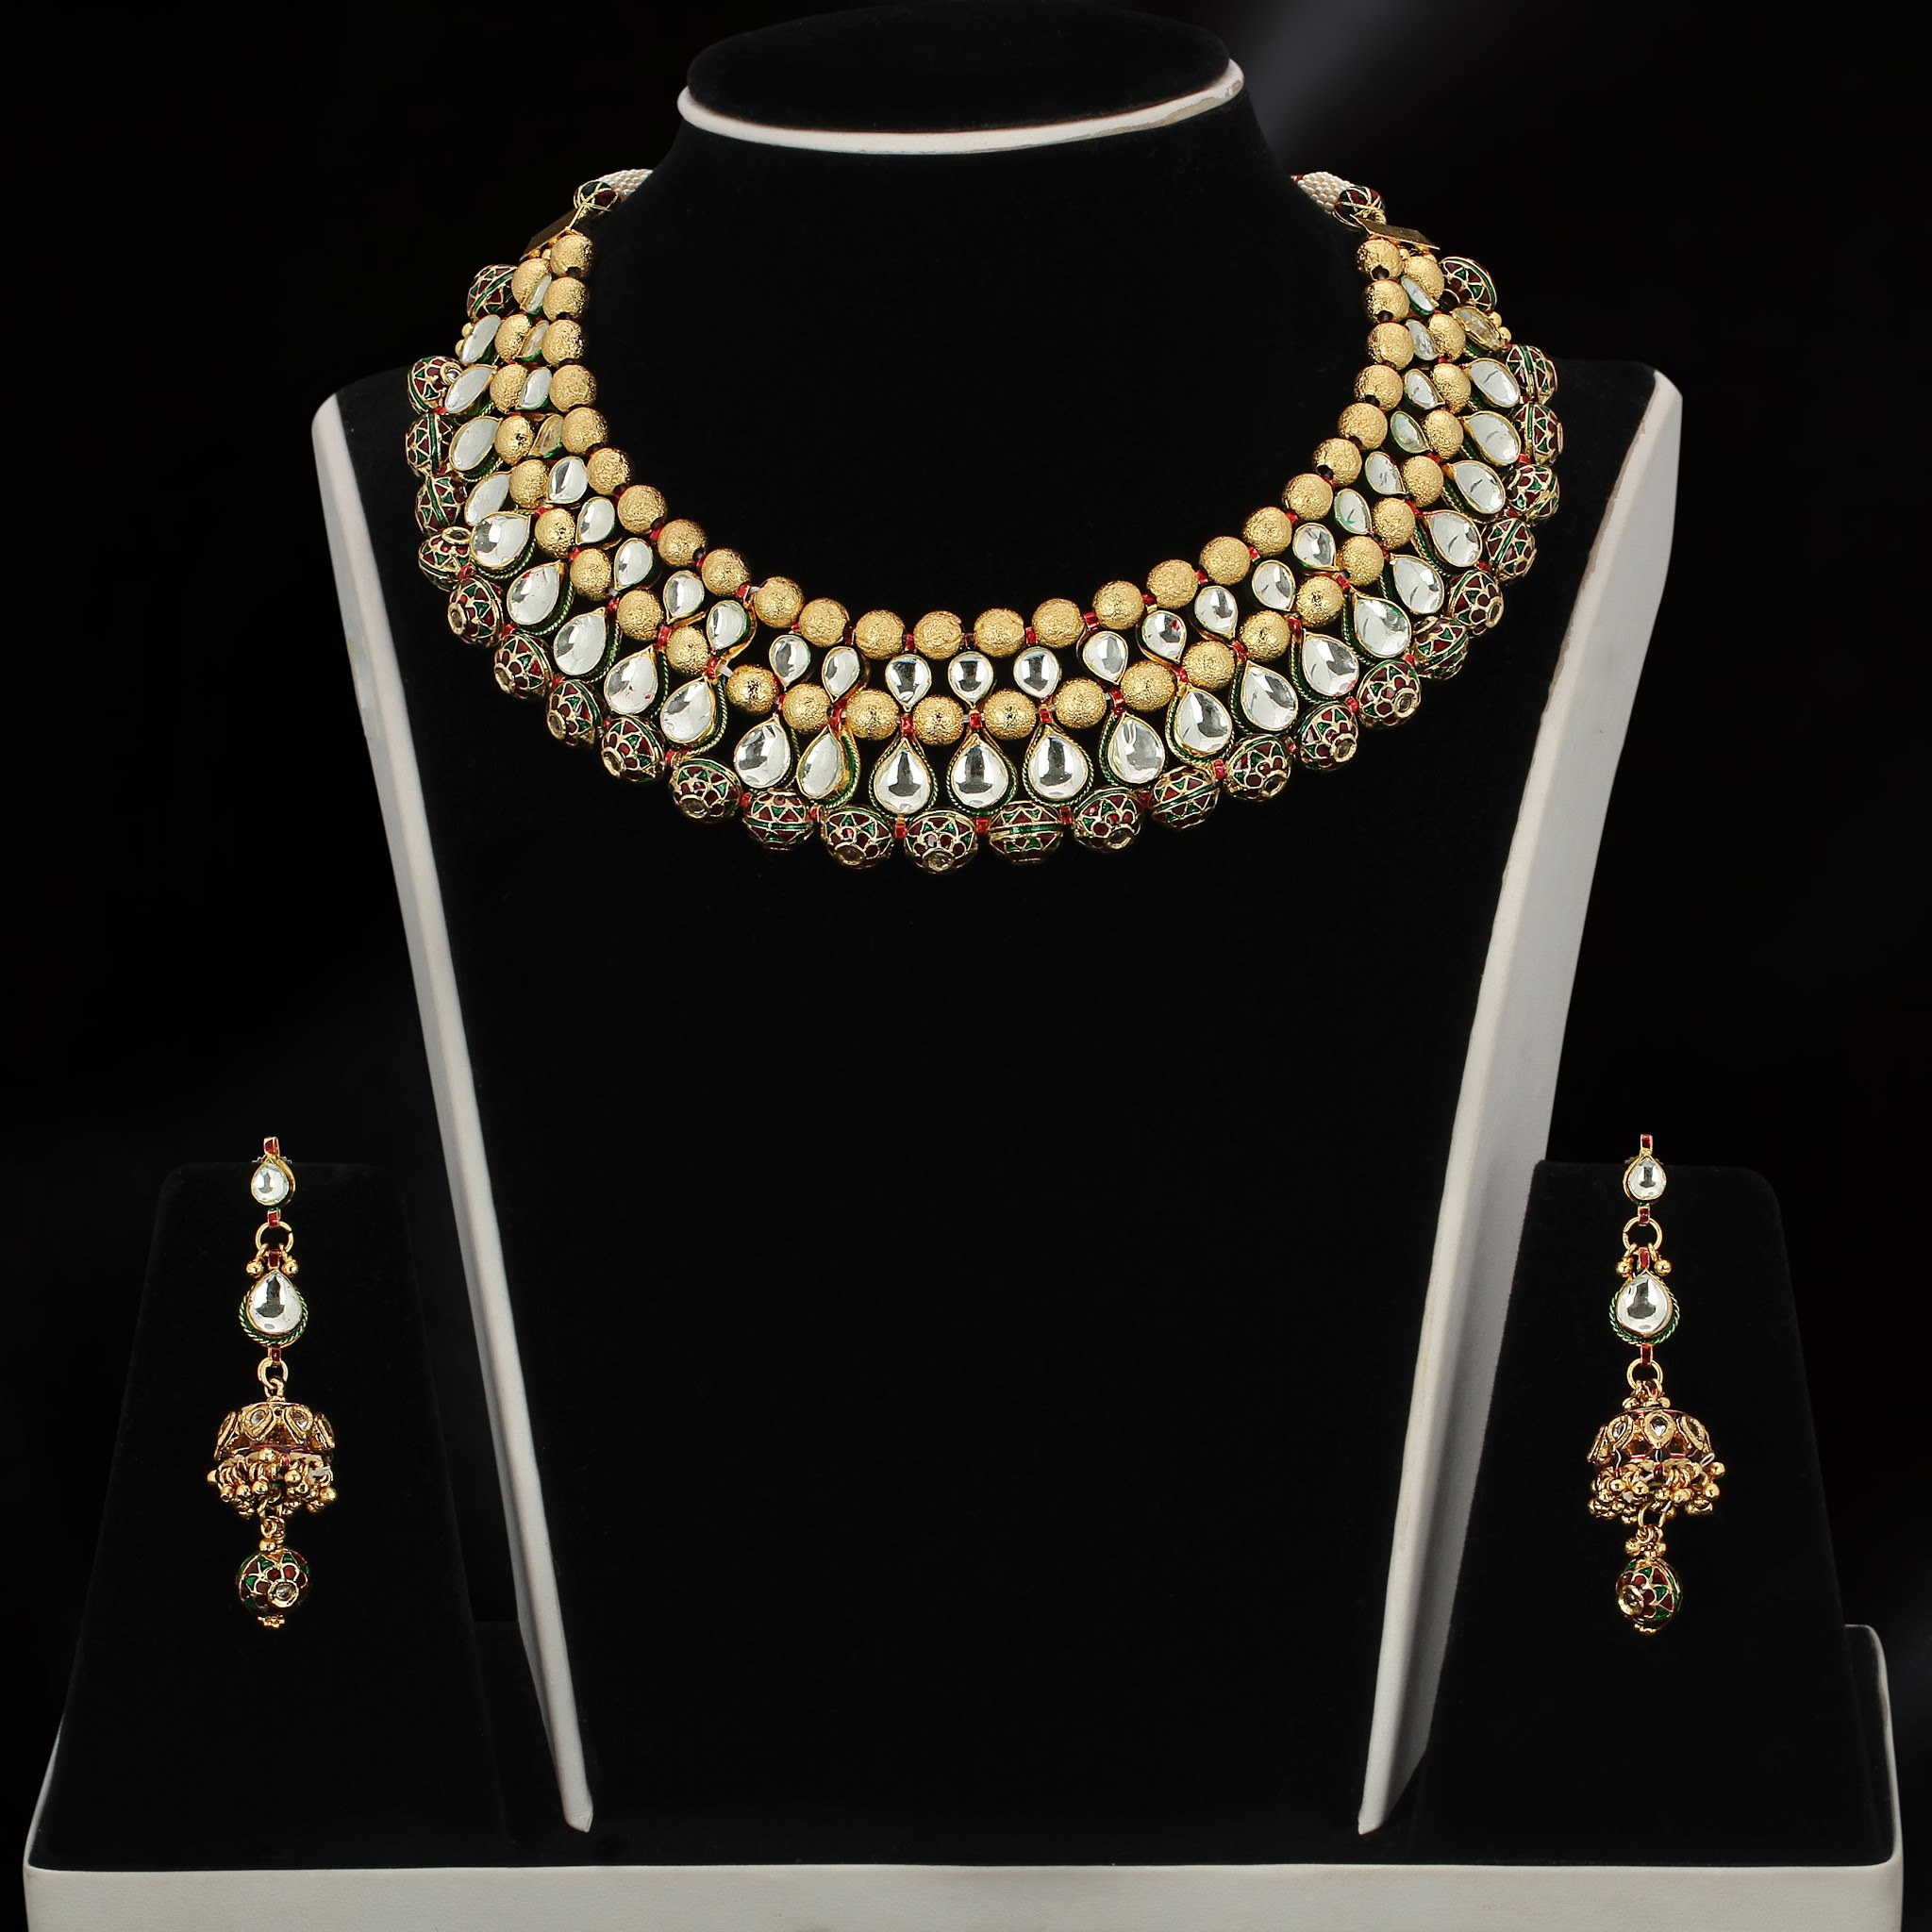 necklaces matching earrings designs original golden designers jewellery stone designer pearl shreevaram set buy necklace online fashion chain jewelry with